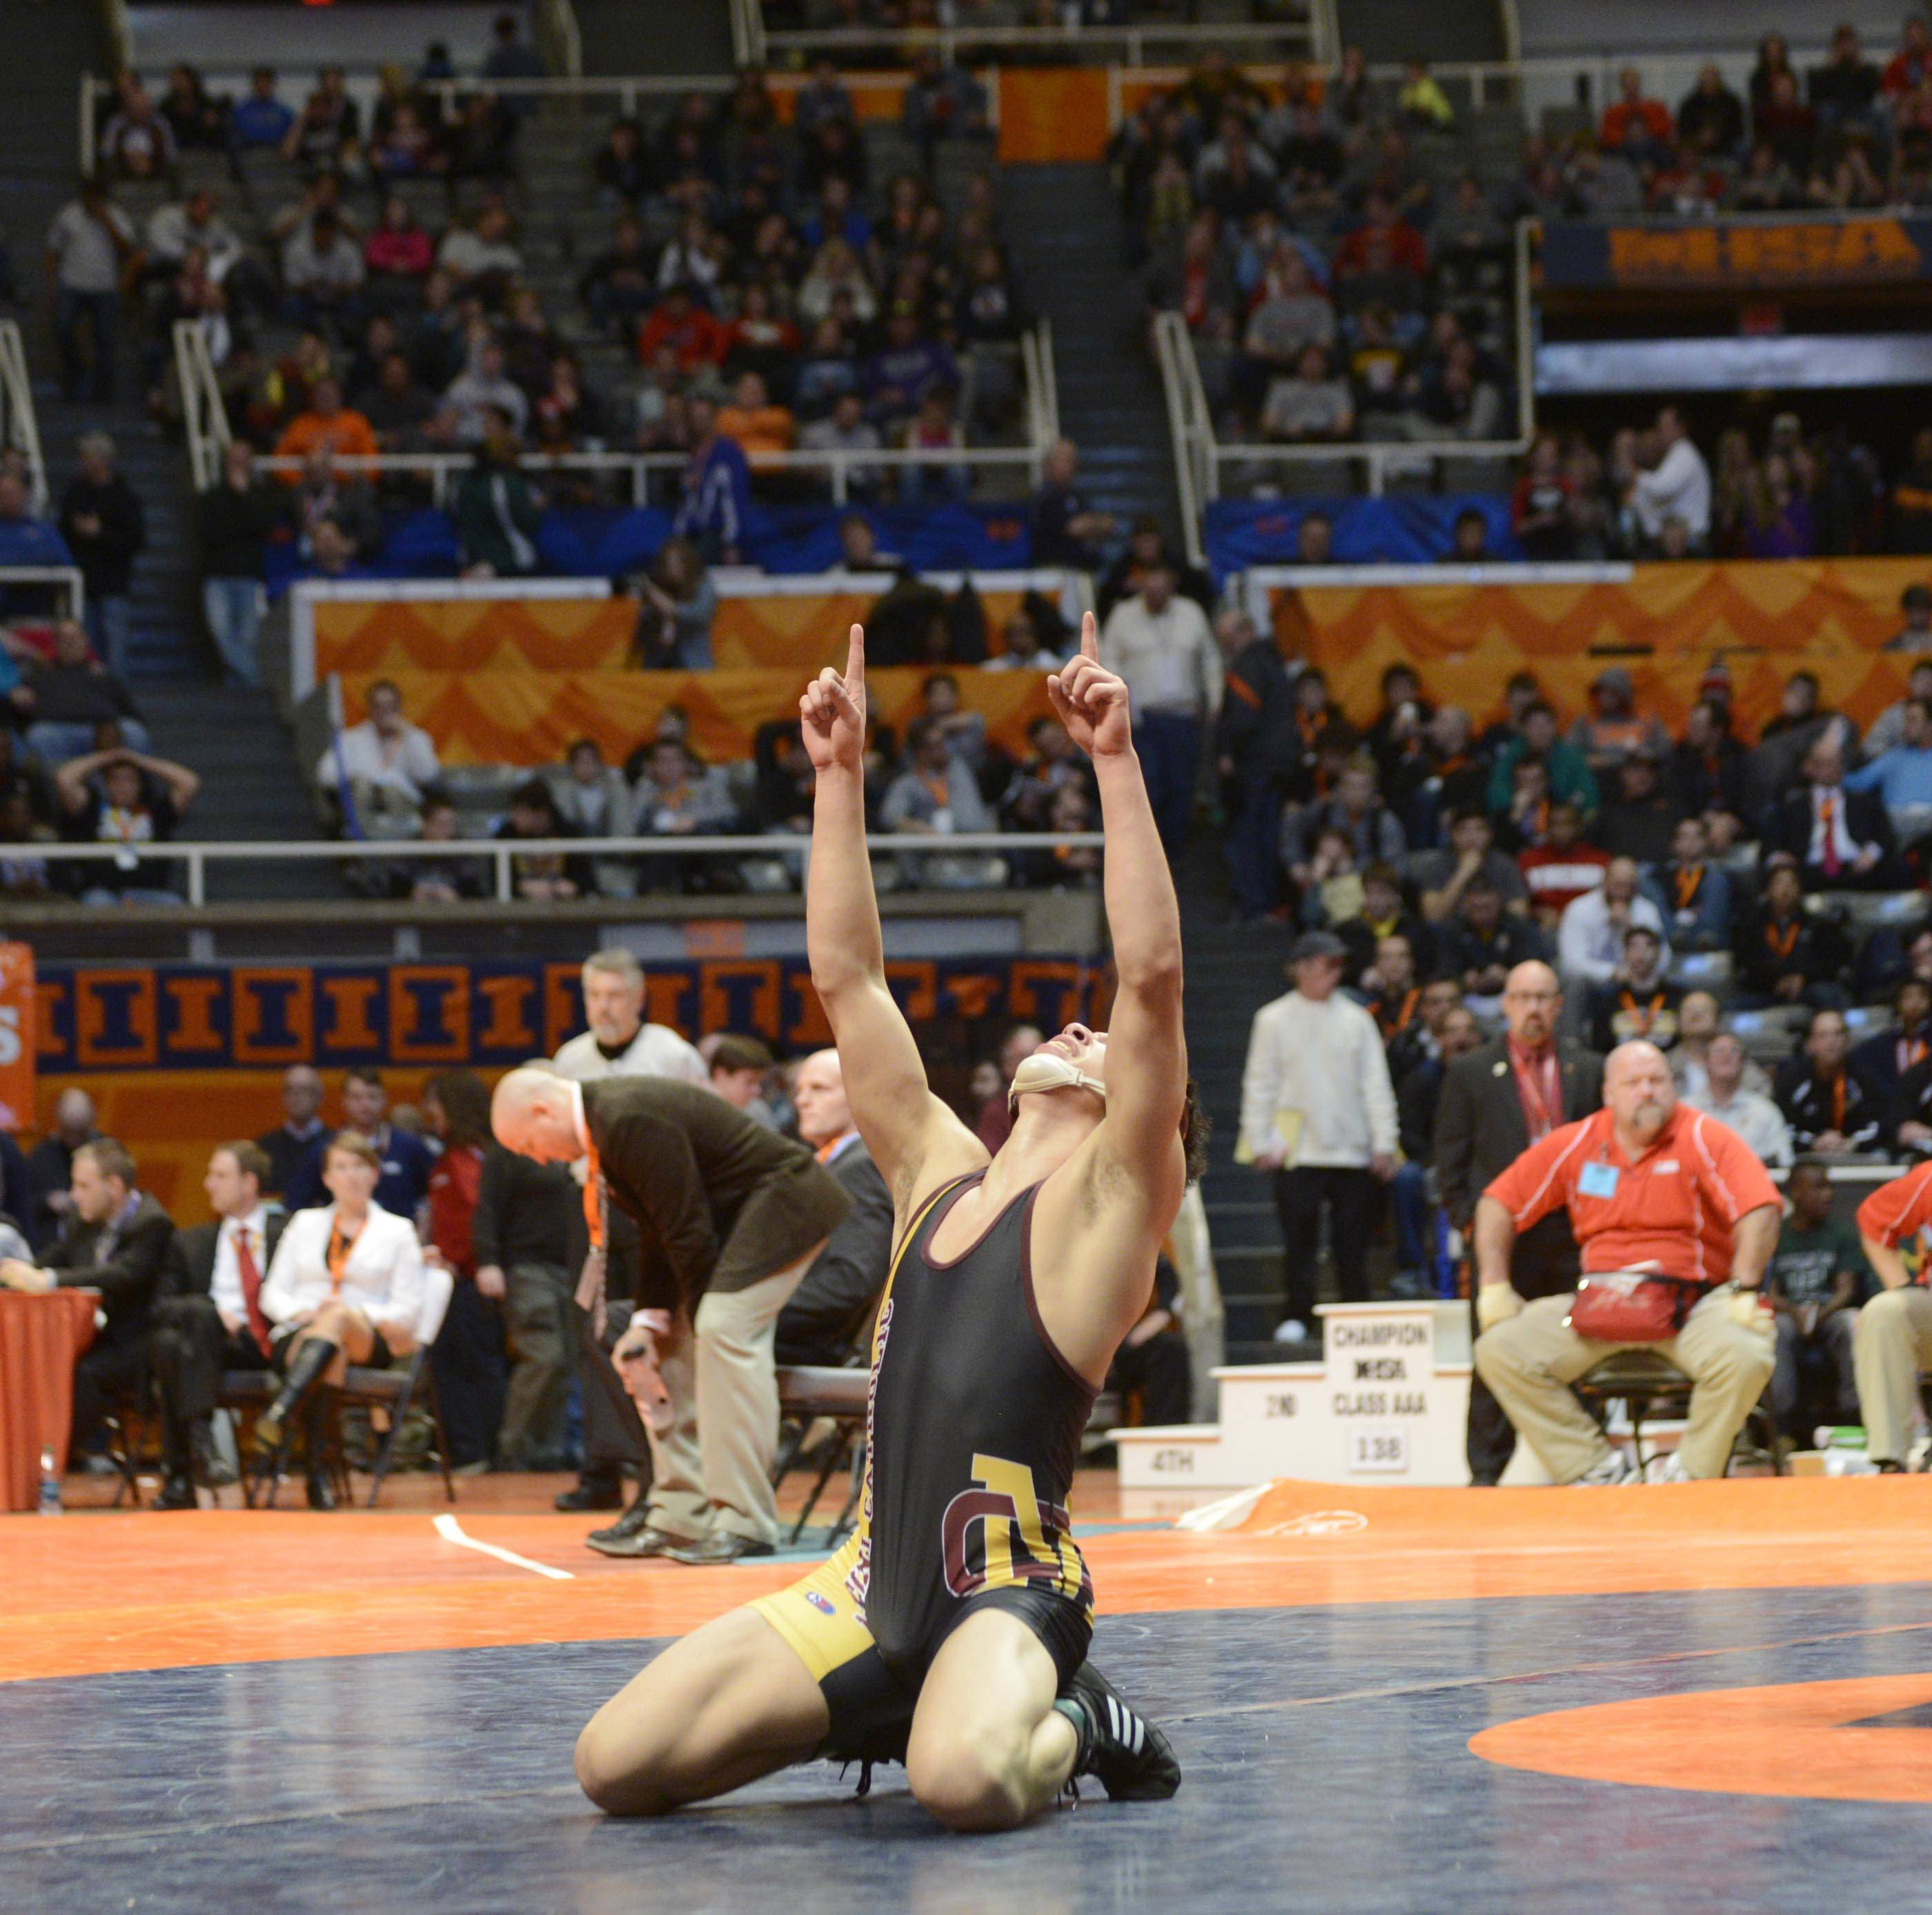 Montini's Chris Garcia falls to his knees after defeating East St. Louis' SirRomeo Howard Saturday in the 145-pound Class 2A championship match in Champaign.